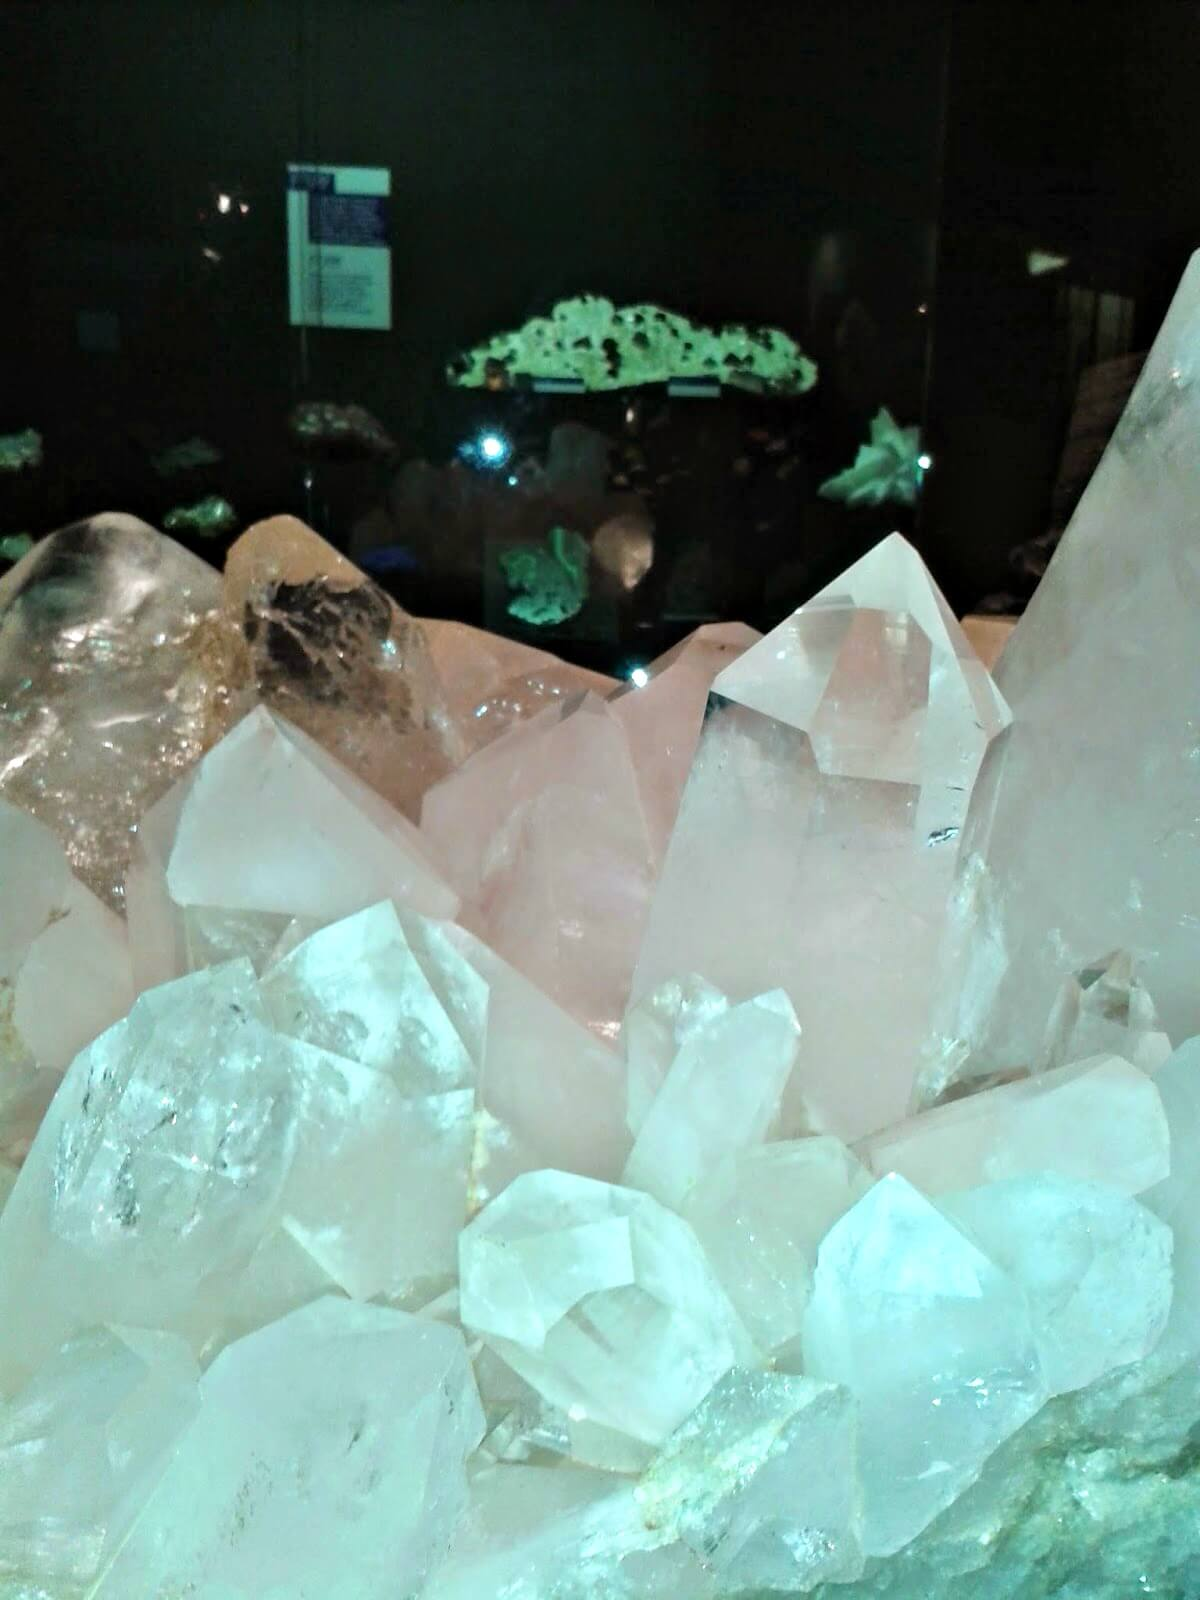 Museums to visit in Cardiff - large crystals on display at National Museum Cardiff